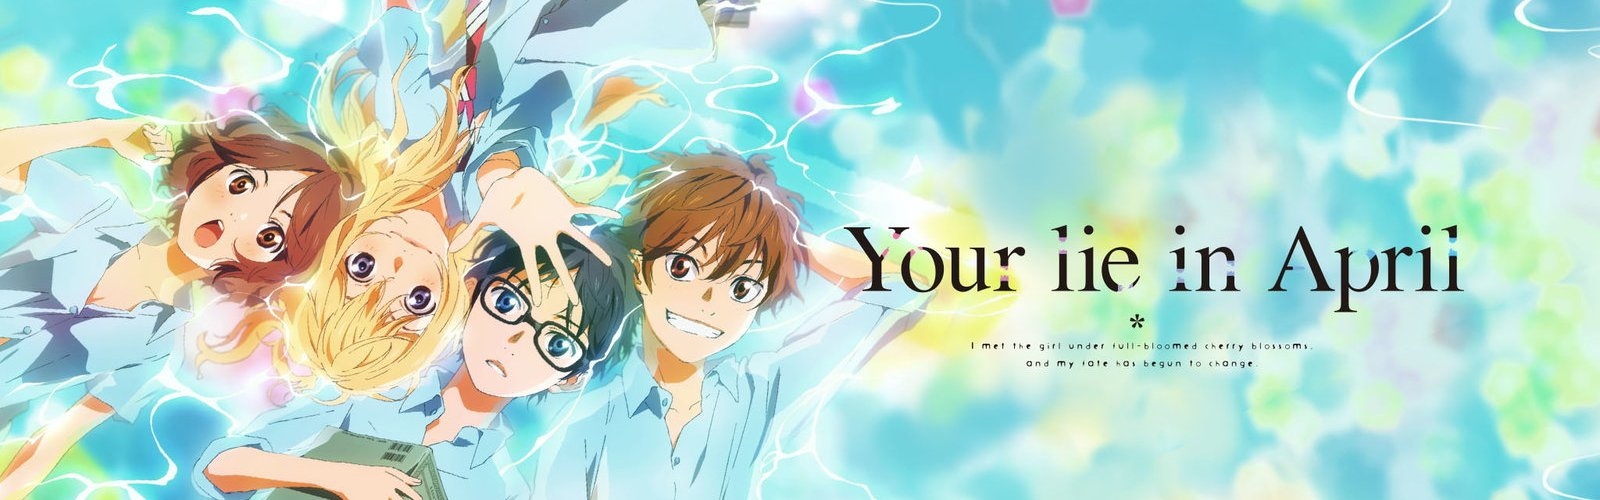 Home reviews anime your lie in april is a depressing masterpiece you should absolutely watch